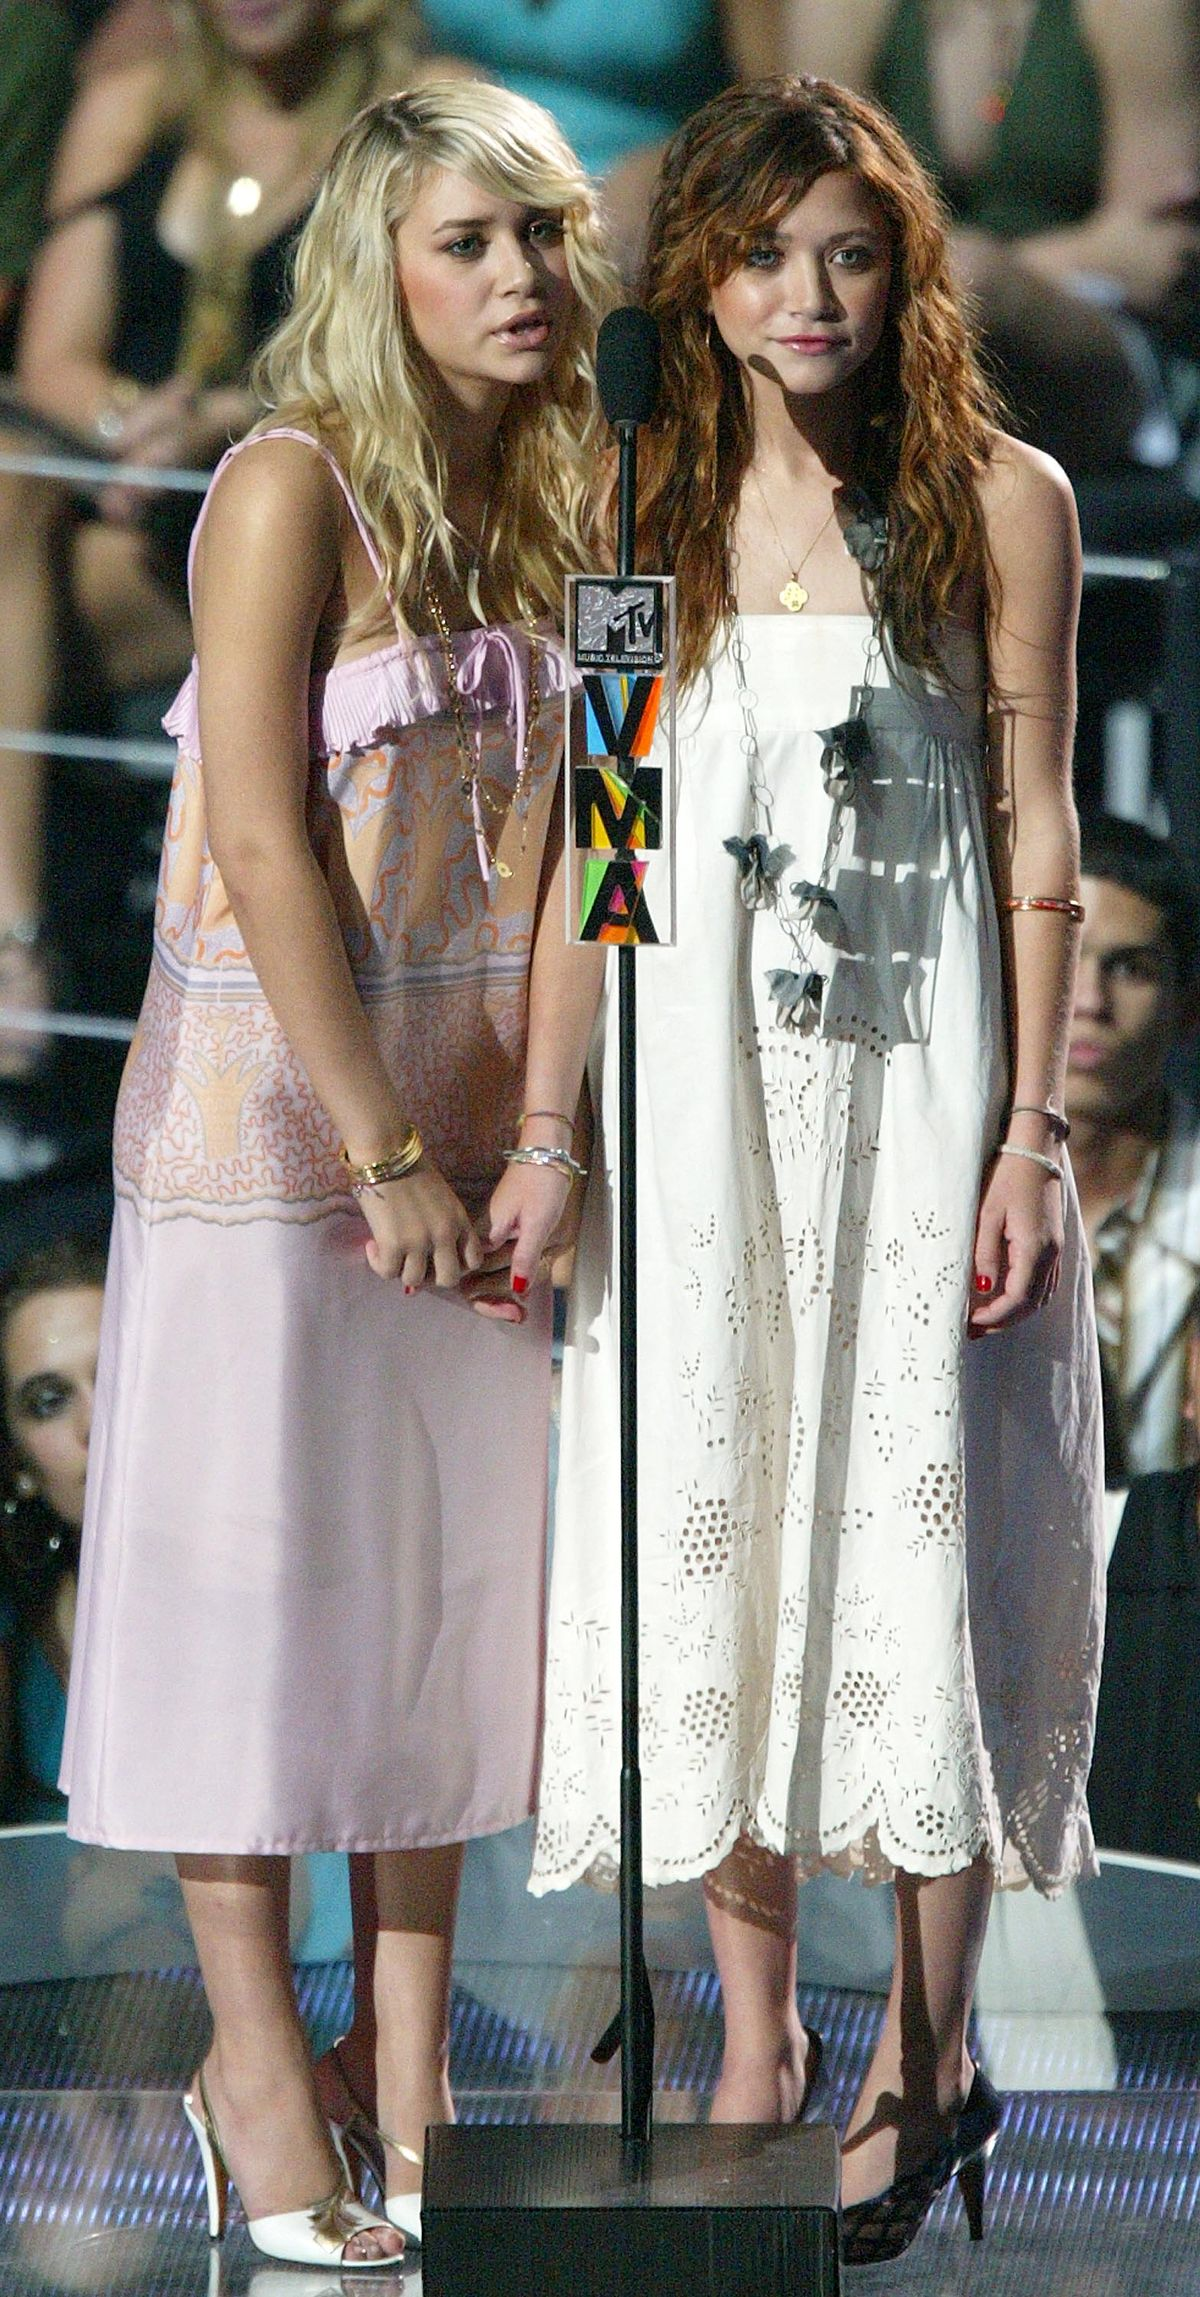 MIAMI - AUGUST 29: Actresses Ashley and Mary-Kate Olsen introduce Jessica Simpson's performance at the 2004 MTV Video Music Awards at the American Airlines Arena August 29, 2004 in Miami, Florida. (Photo by Kevin Winter/Getty Images)